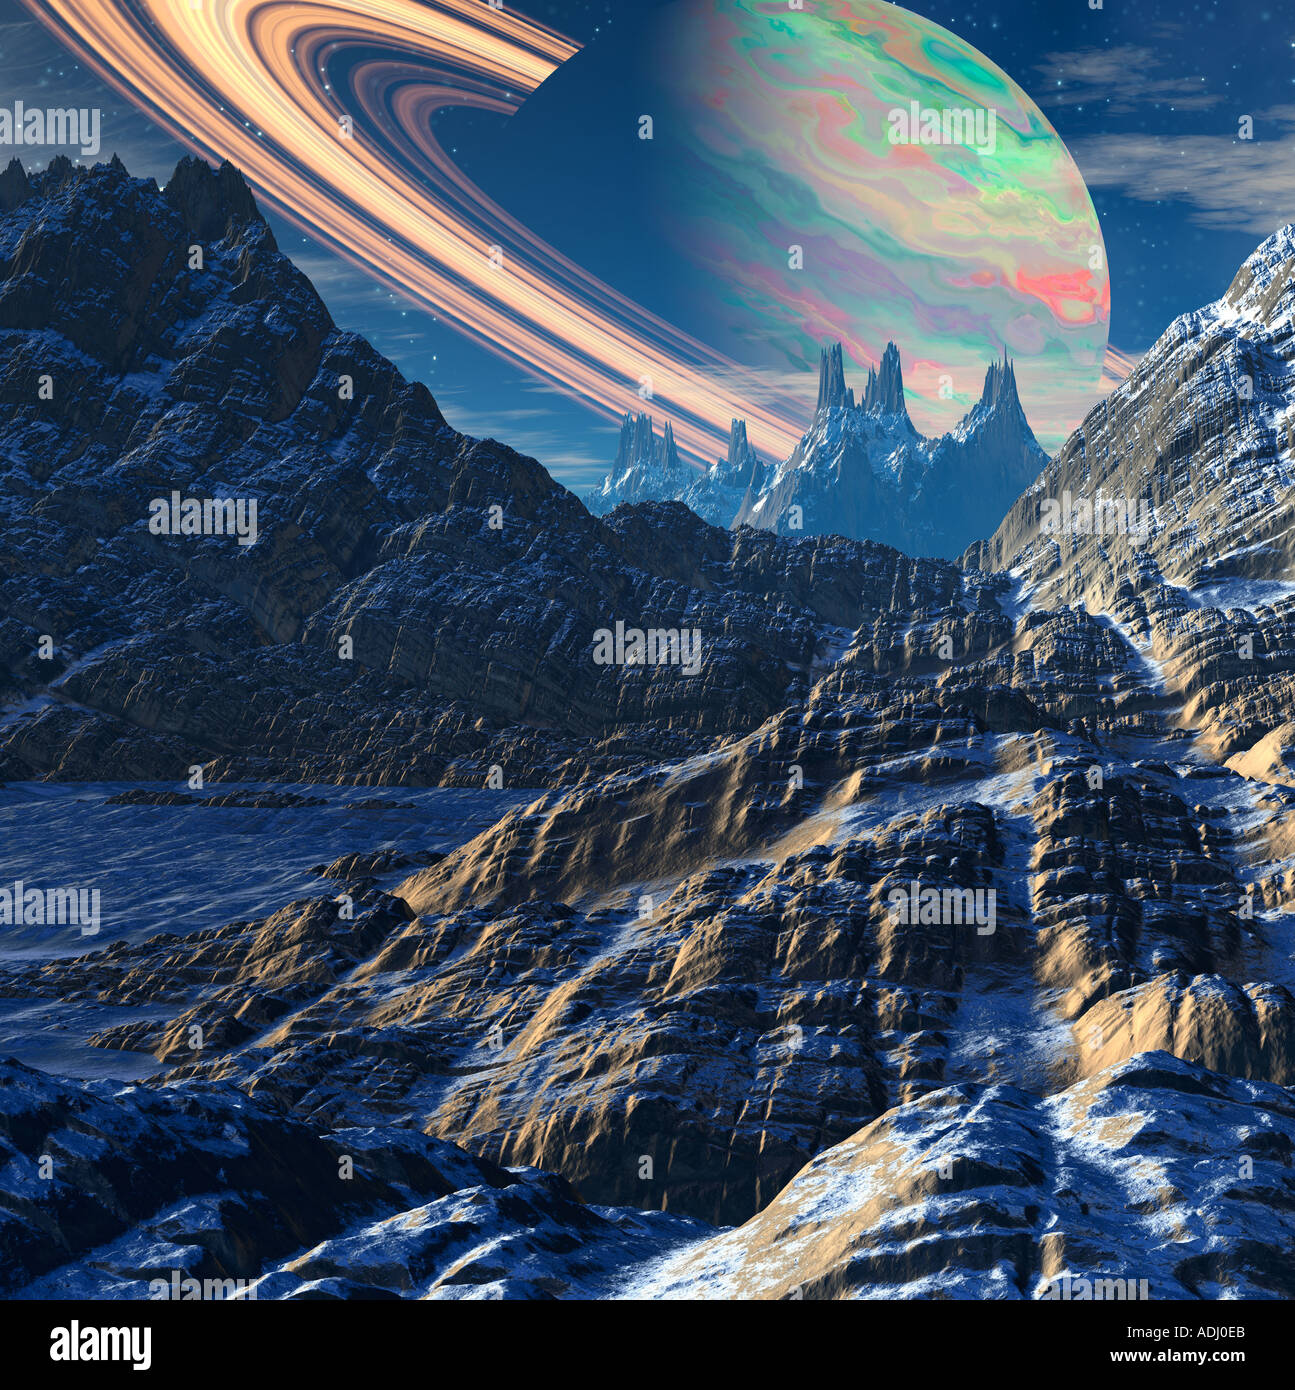 Saturn with rings rising over rocky moon 3d computer generated sci fi world Stock Photo